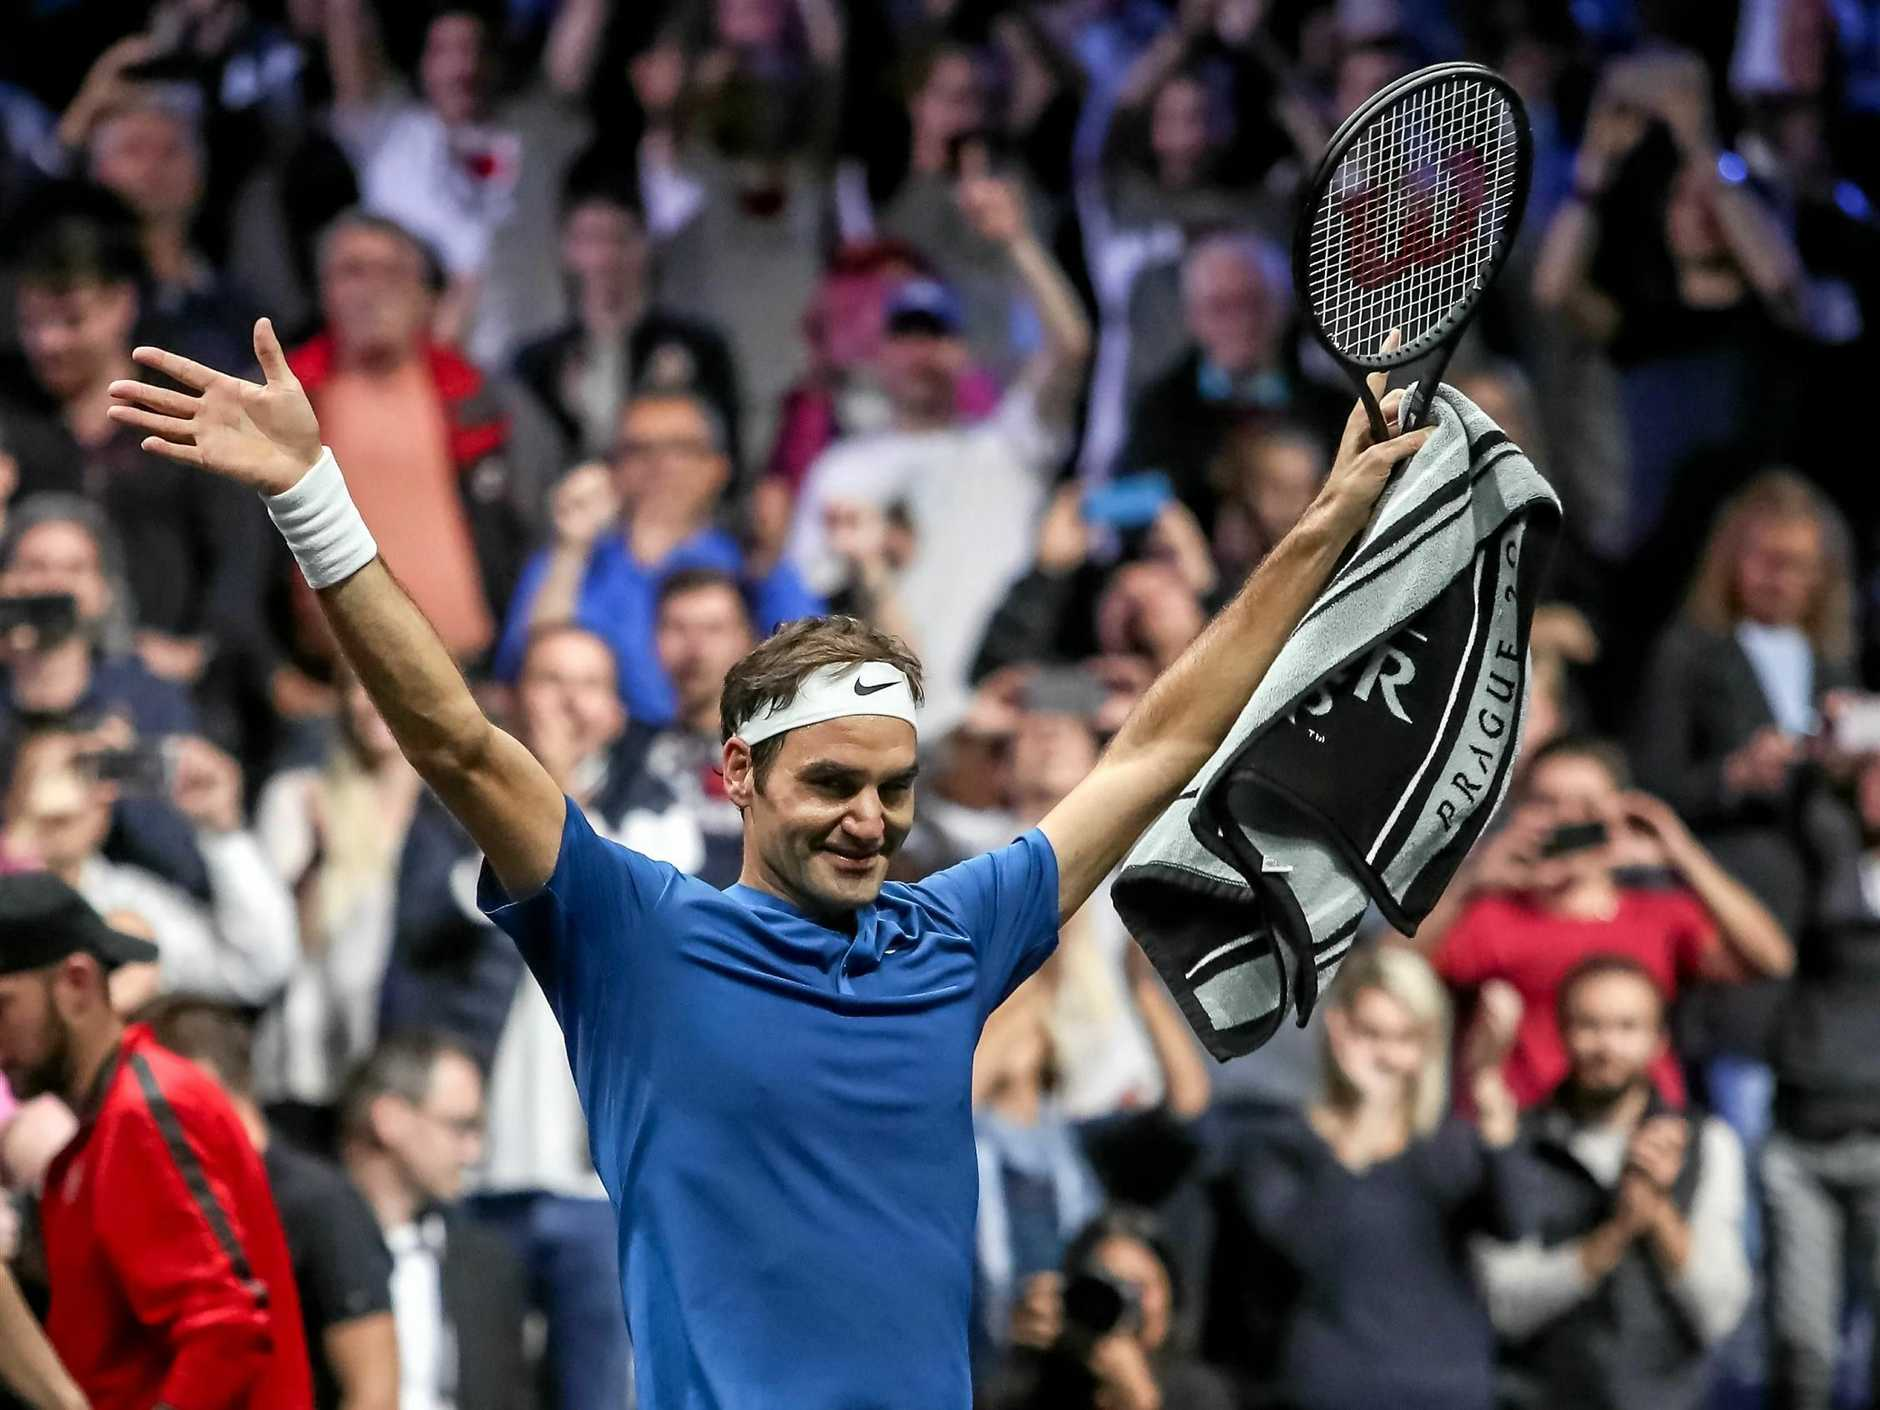 epa06224864 Switzerland's Roger Federer of the Team Europe celebrates after winning his match against Australia's Nick Kyrgios of the Team World during the Laver Cup tennis tournament in Prague, Czech Republic, 24 September 2017.  EPA/MARTIN DIVISEK